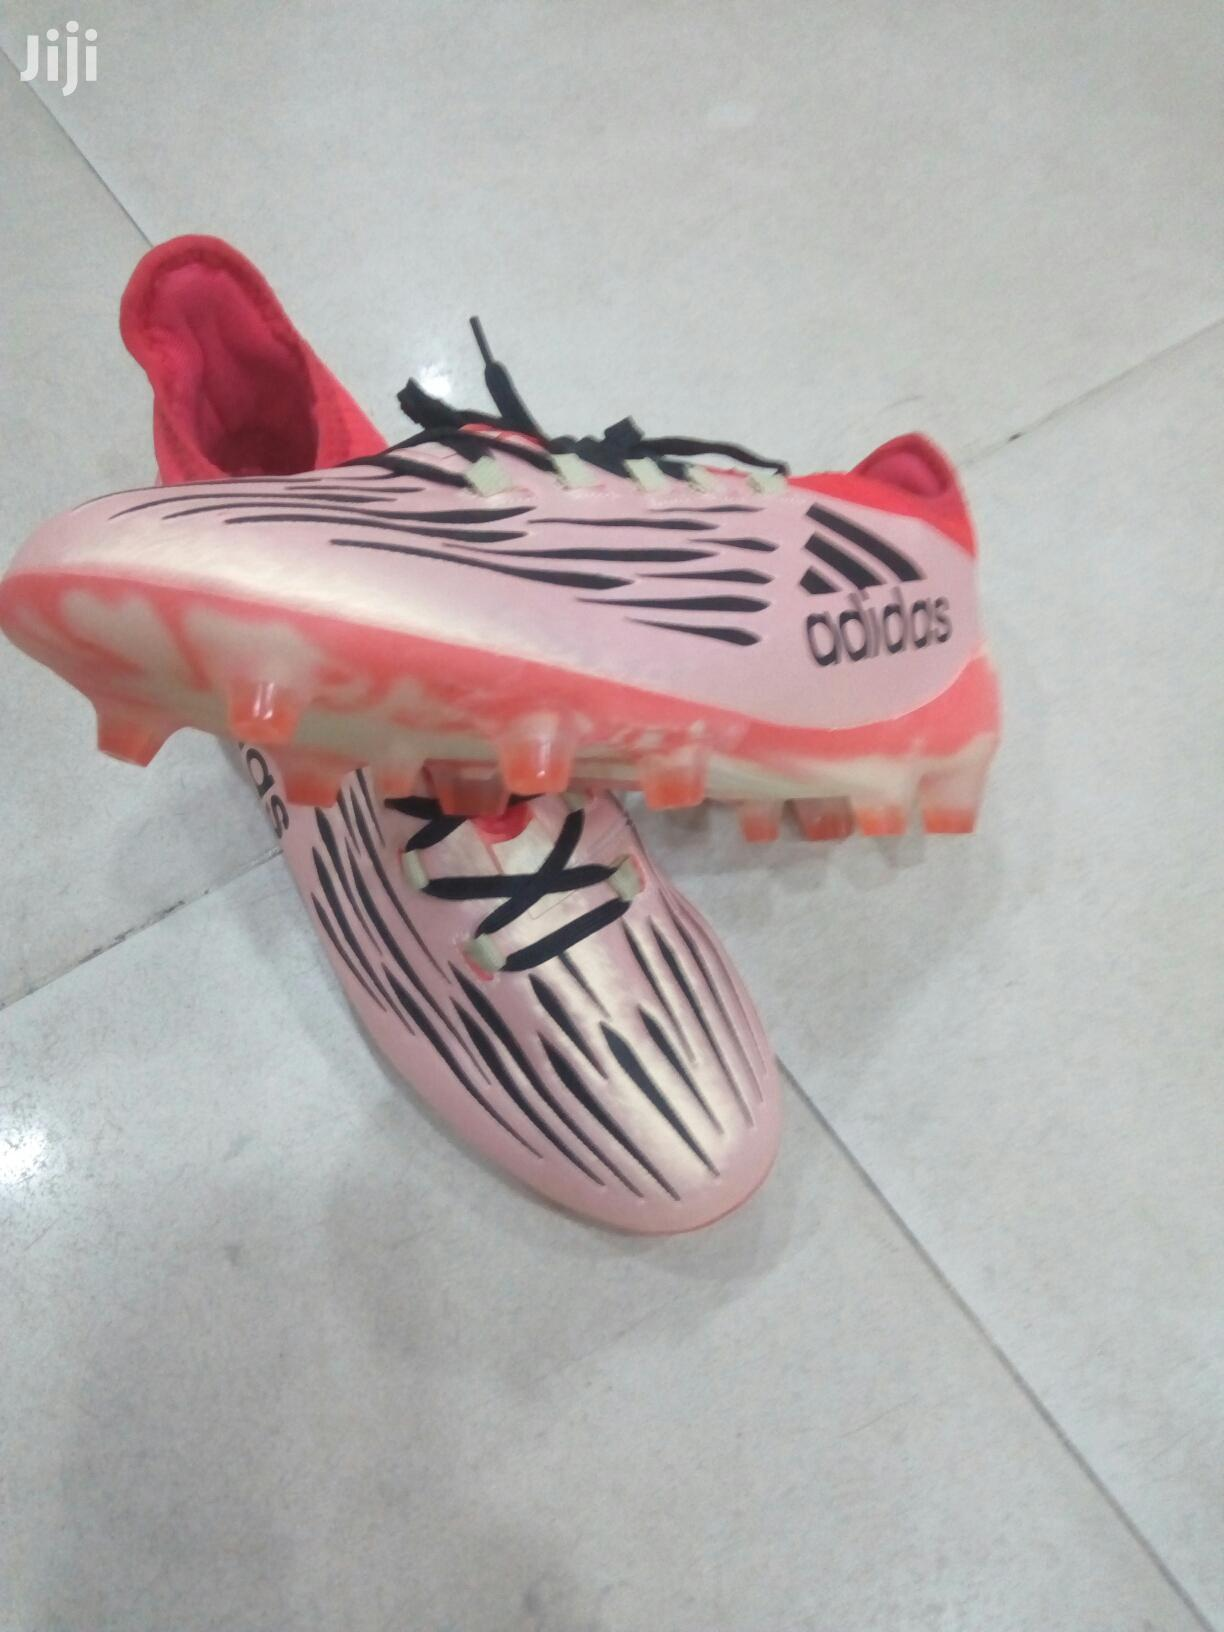 Adidas Soccer Boot   Shoes for sale in Surulere, Lagos State, Nigeria